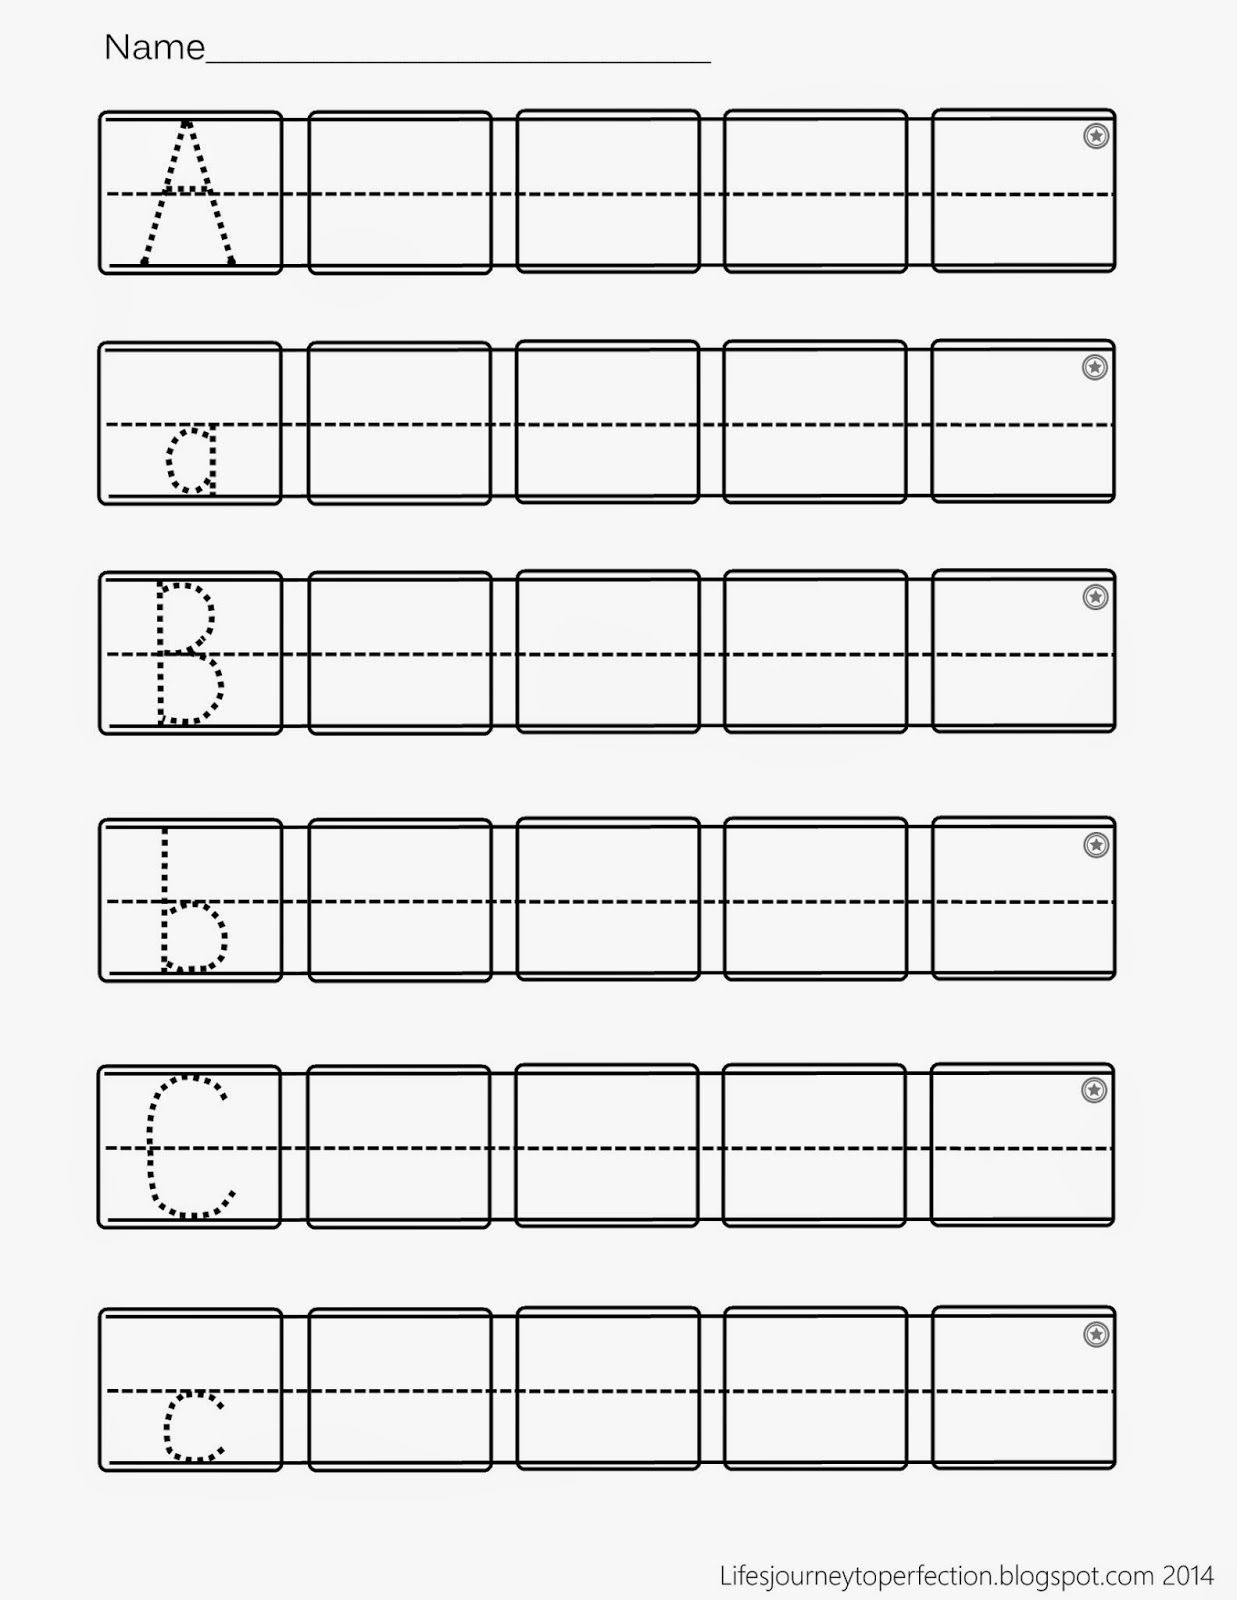 Abc printables for preschool - Life S Journey To Perfection Preschool Practice Abc Writing Worksheet Printables